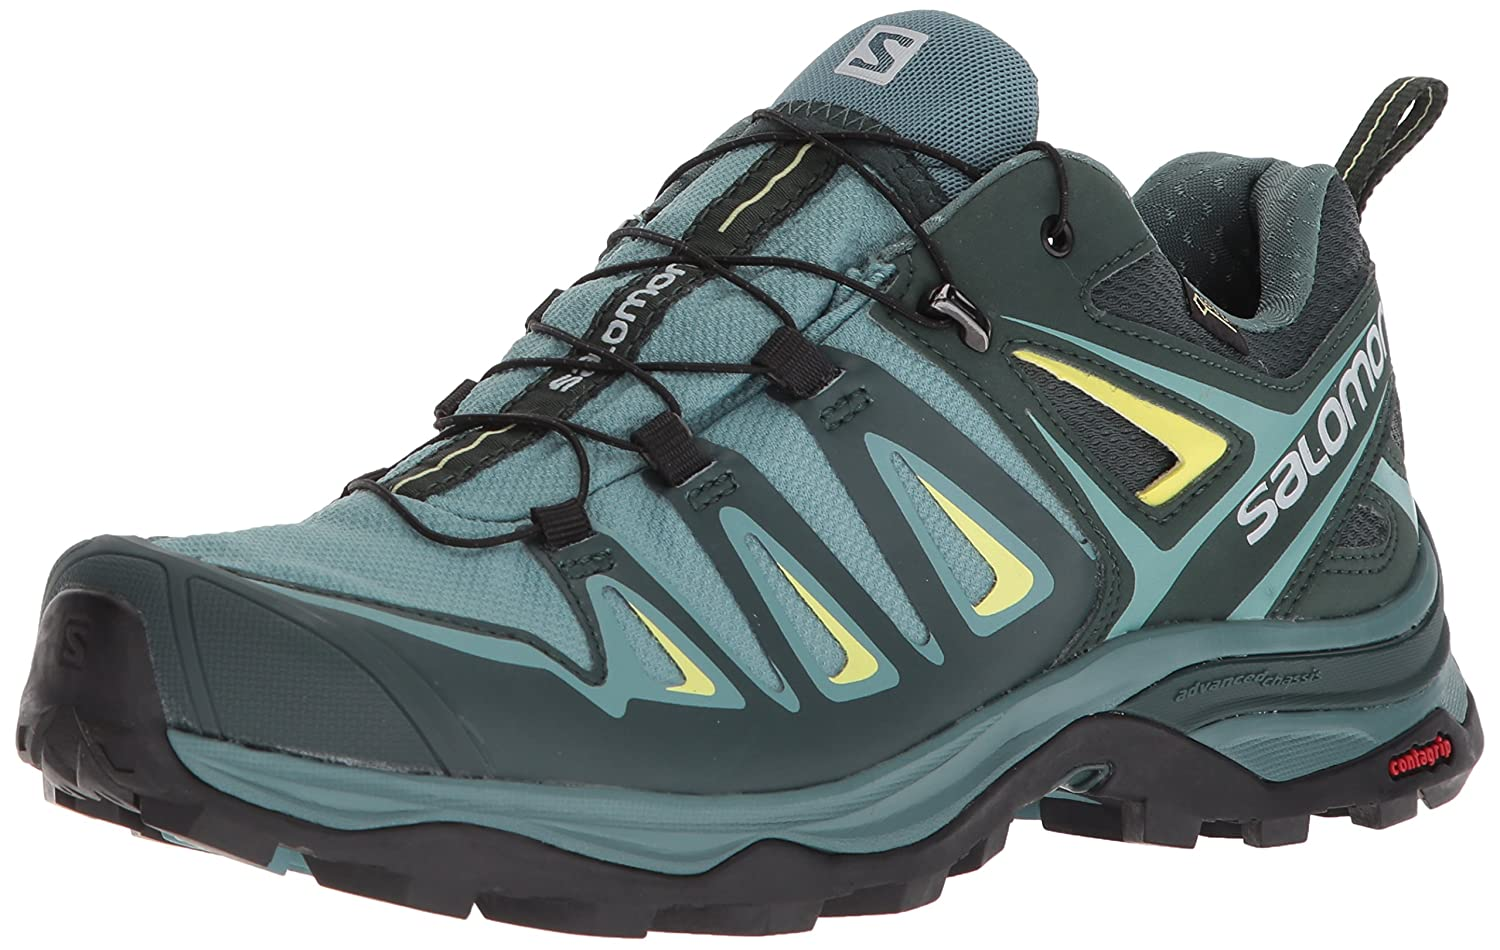 Salomon Women's X Ultra 3 GTX Hiking Shoes B071LJSBT8 9 M US|Artic